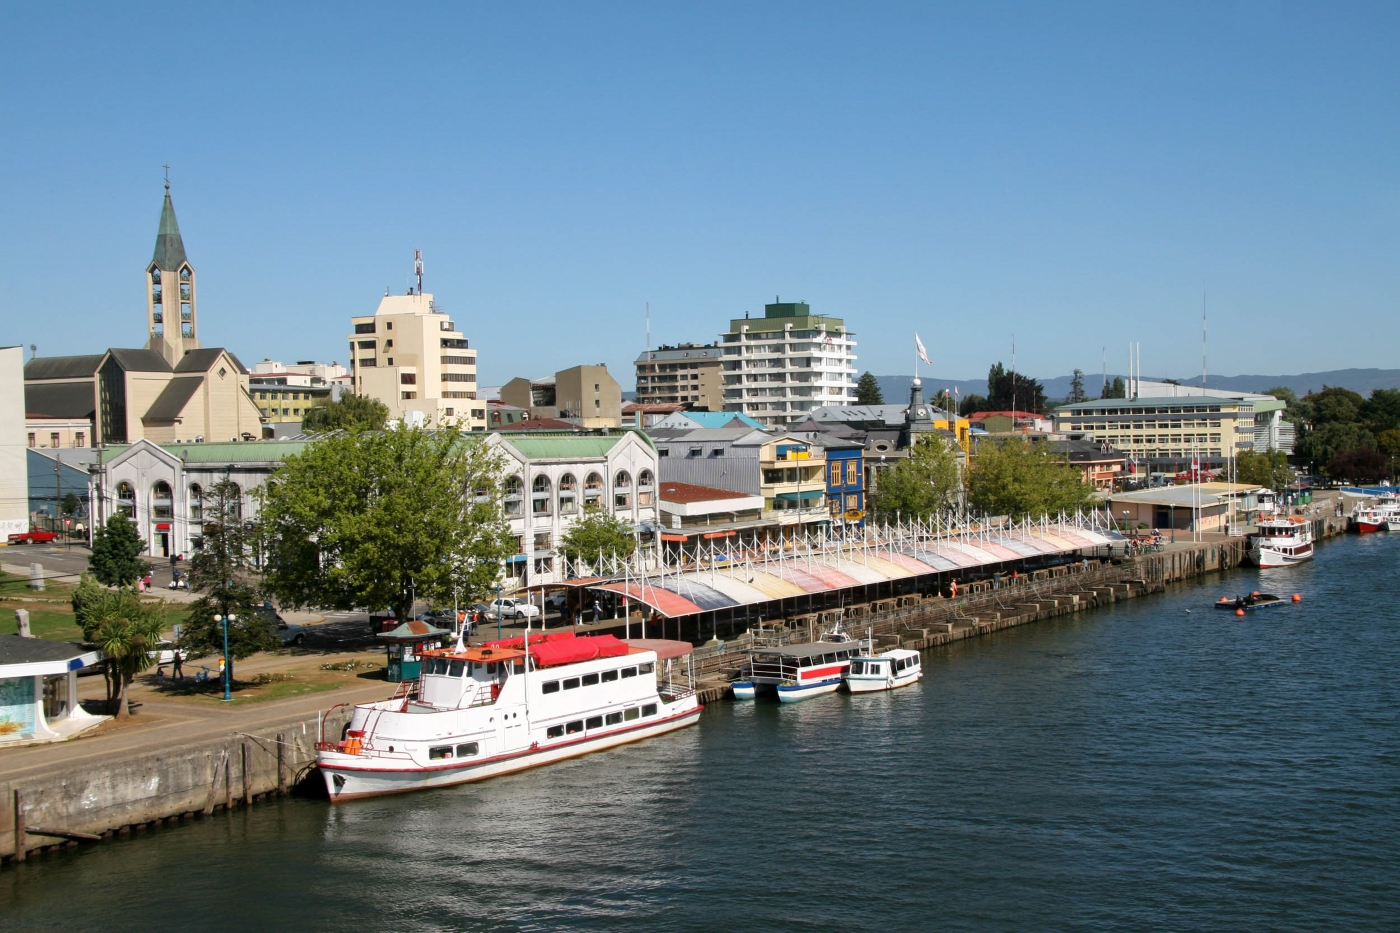 Chile_ChileanLakeDistrict_Valdivia_iStock-4